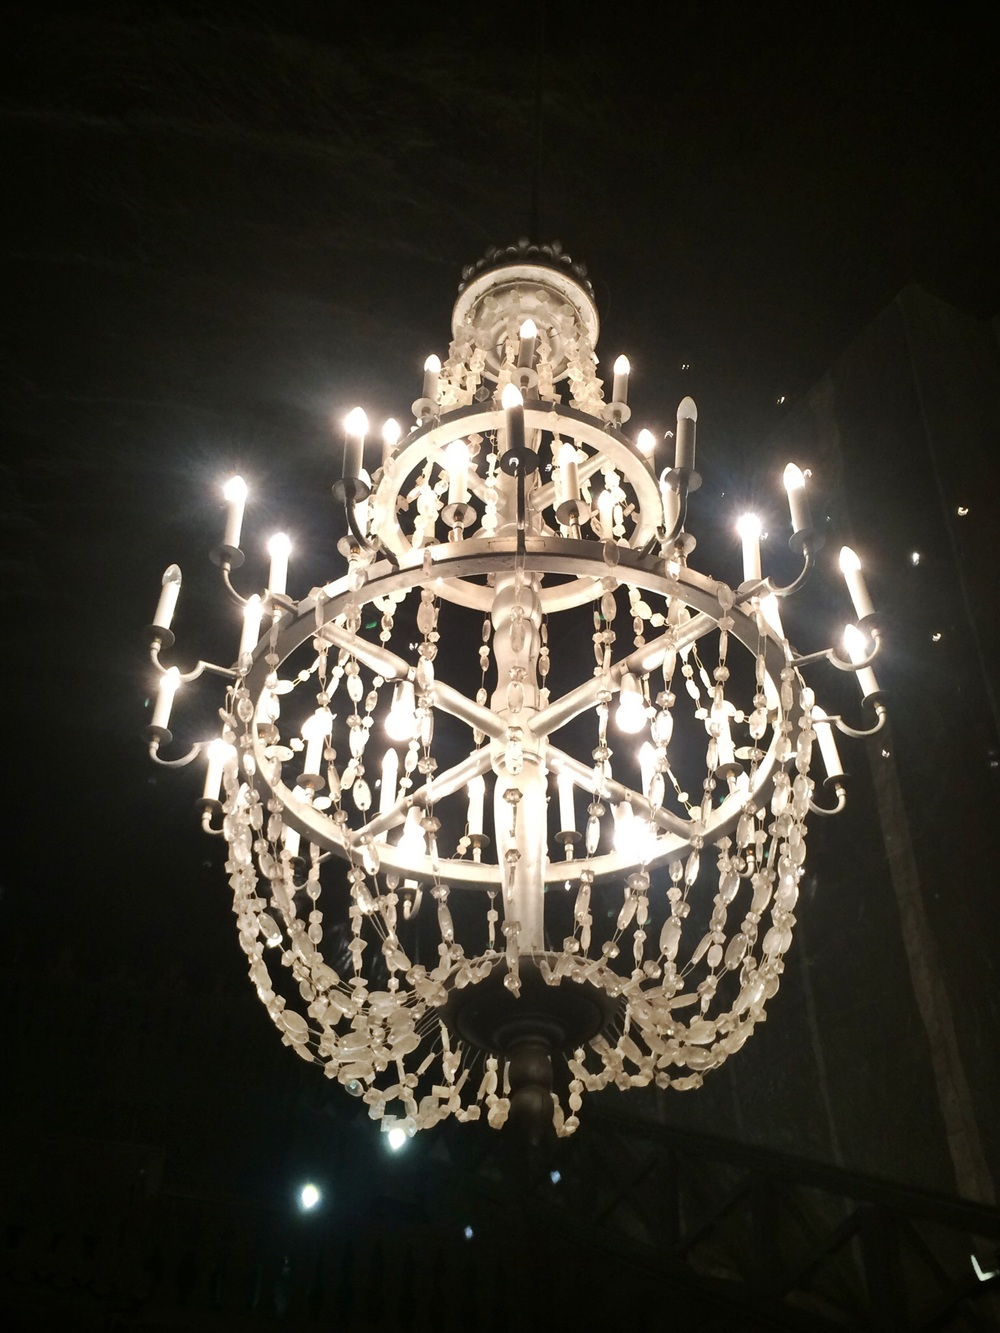 Chandelier with crystals made of salt